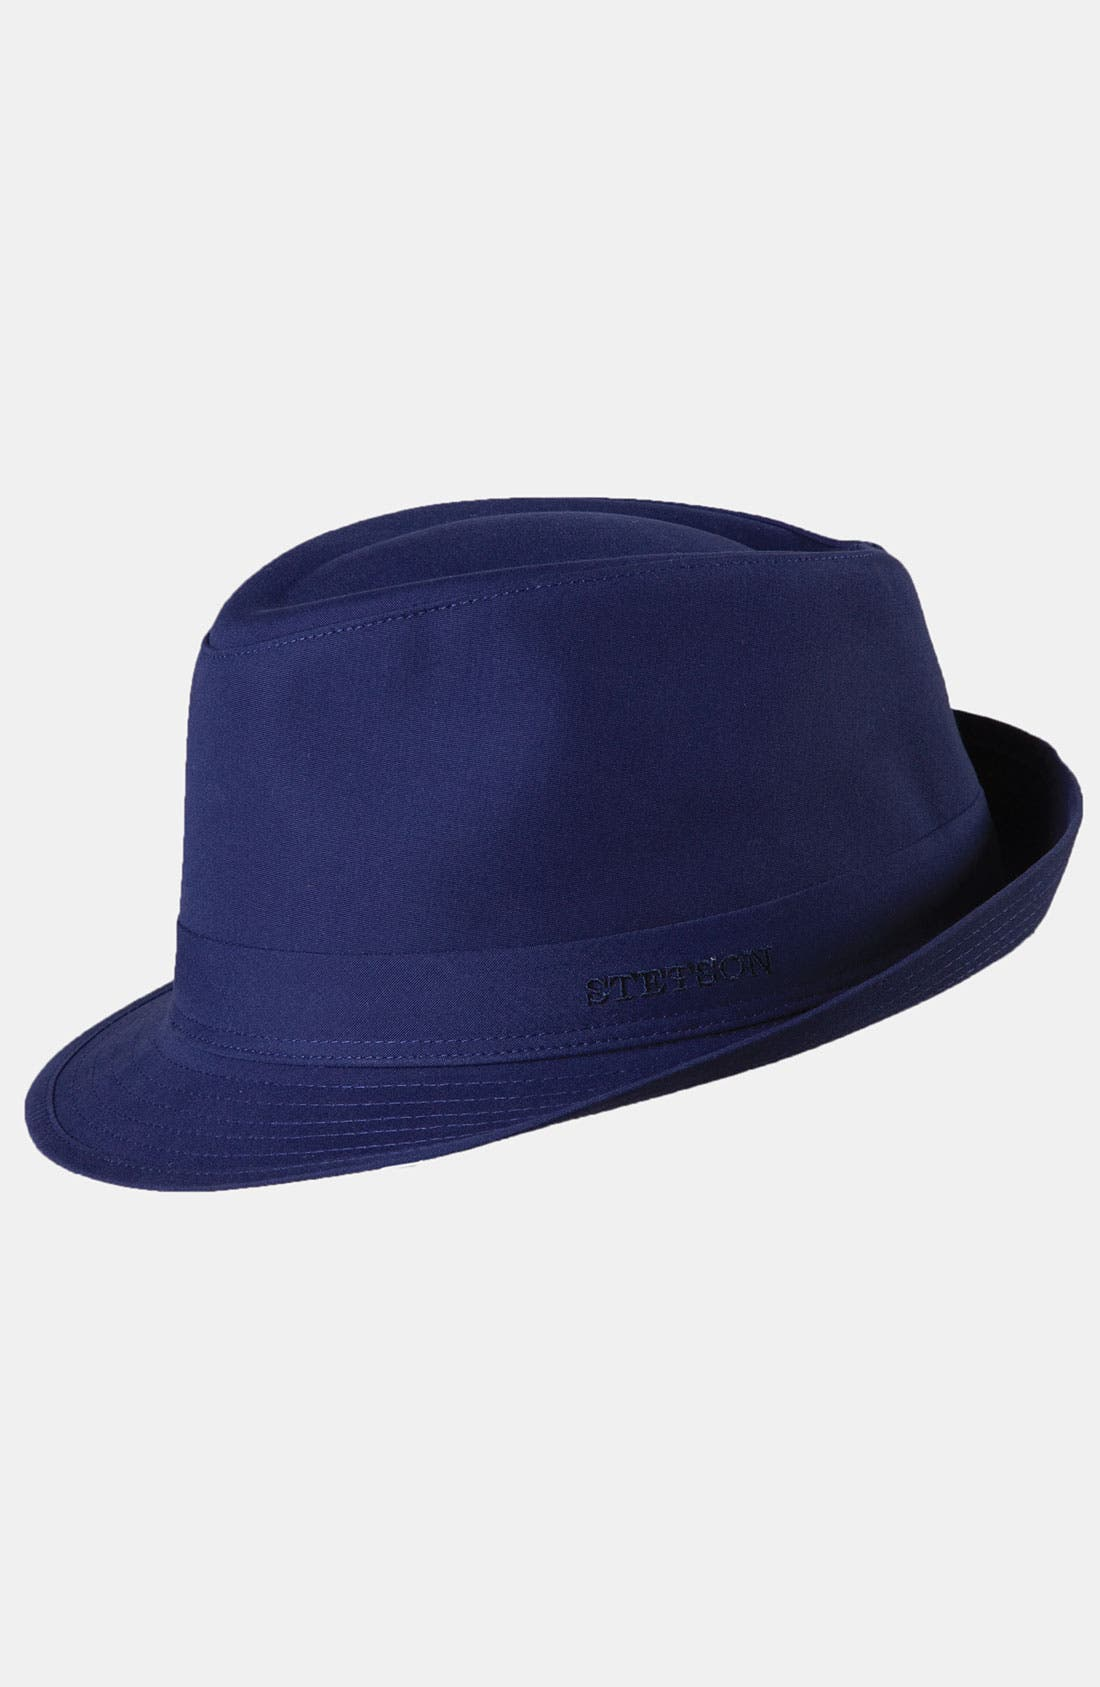 Alternate Image 1 Selected - Stetson Water Repellent Fedora